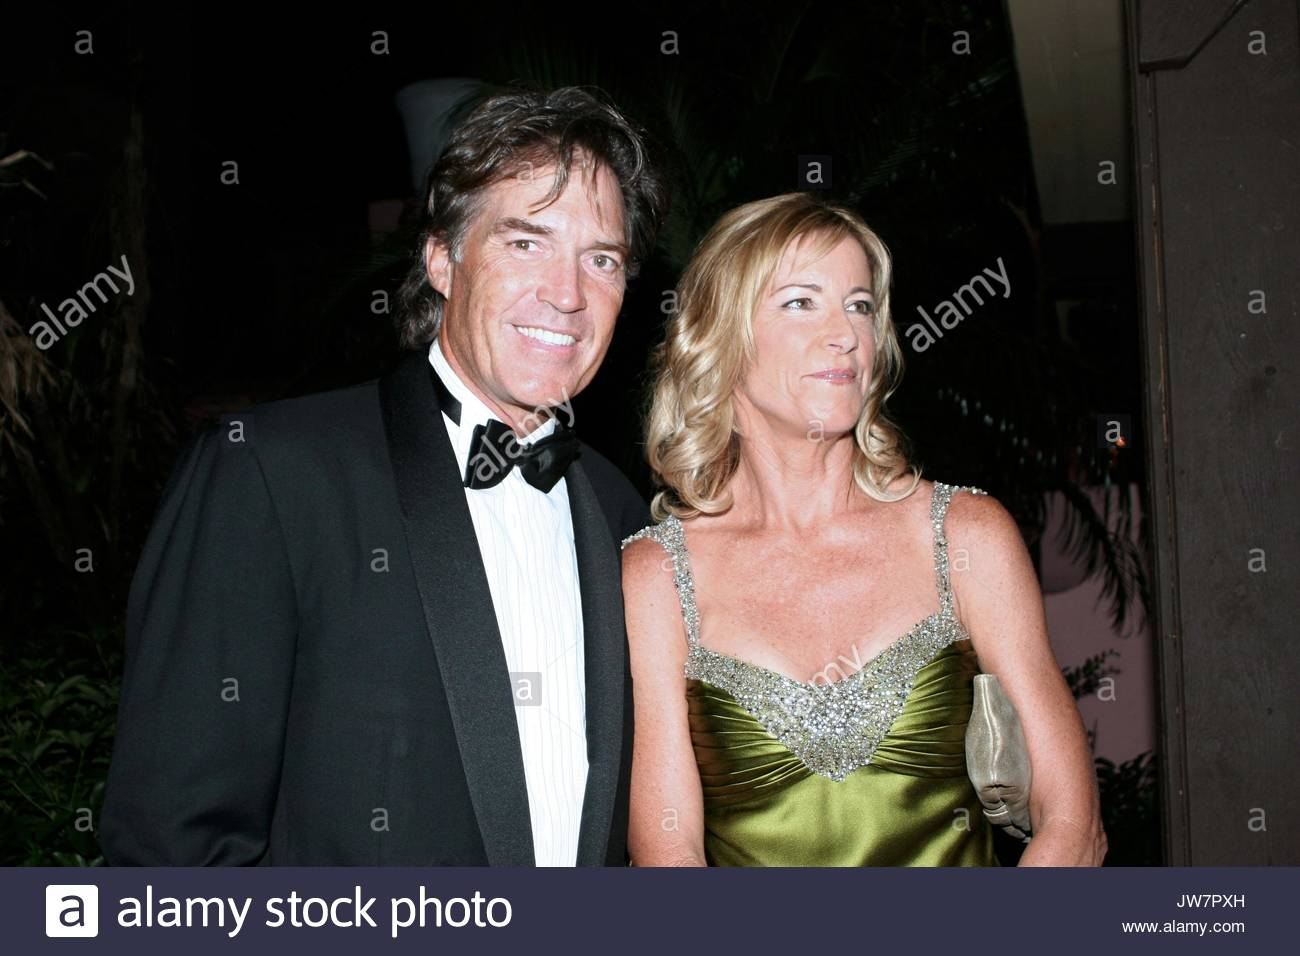 Andy Mill and Chris Evert Greg and Laura Norman Chris Evert and